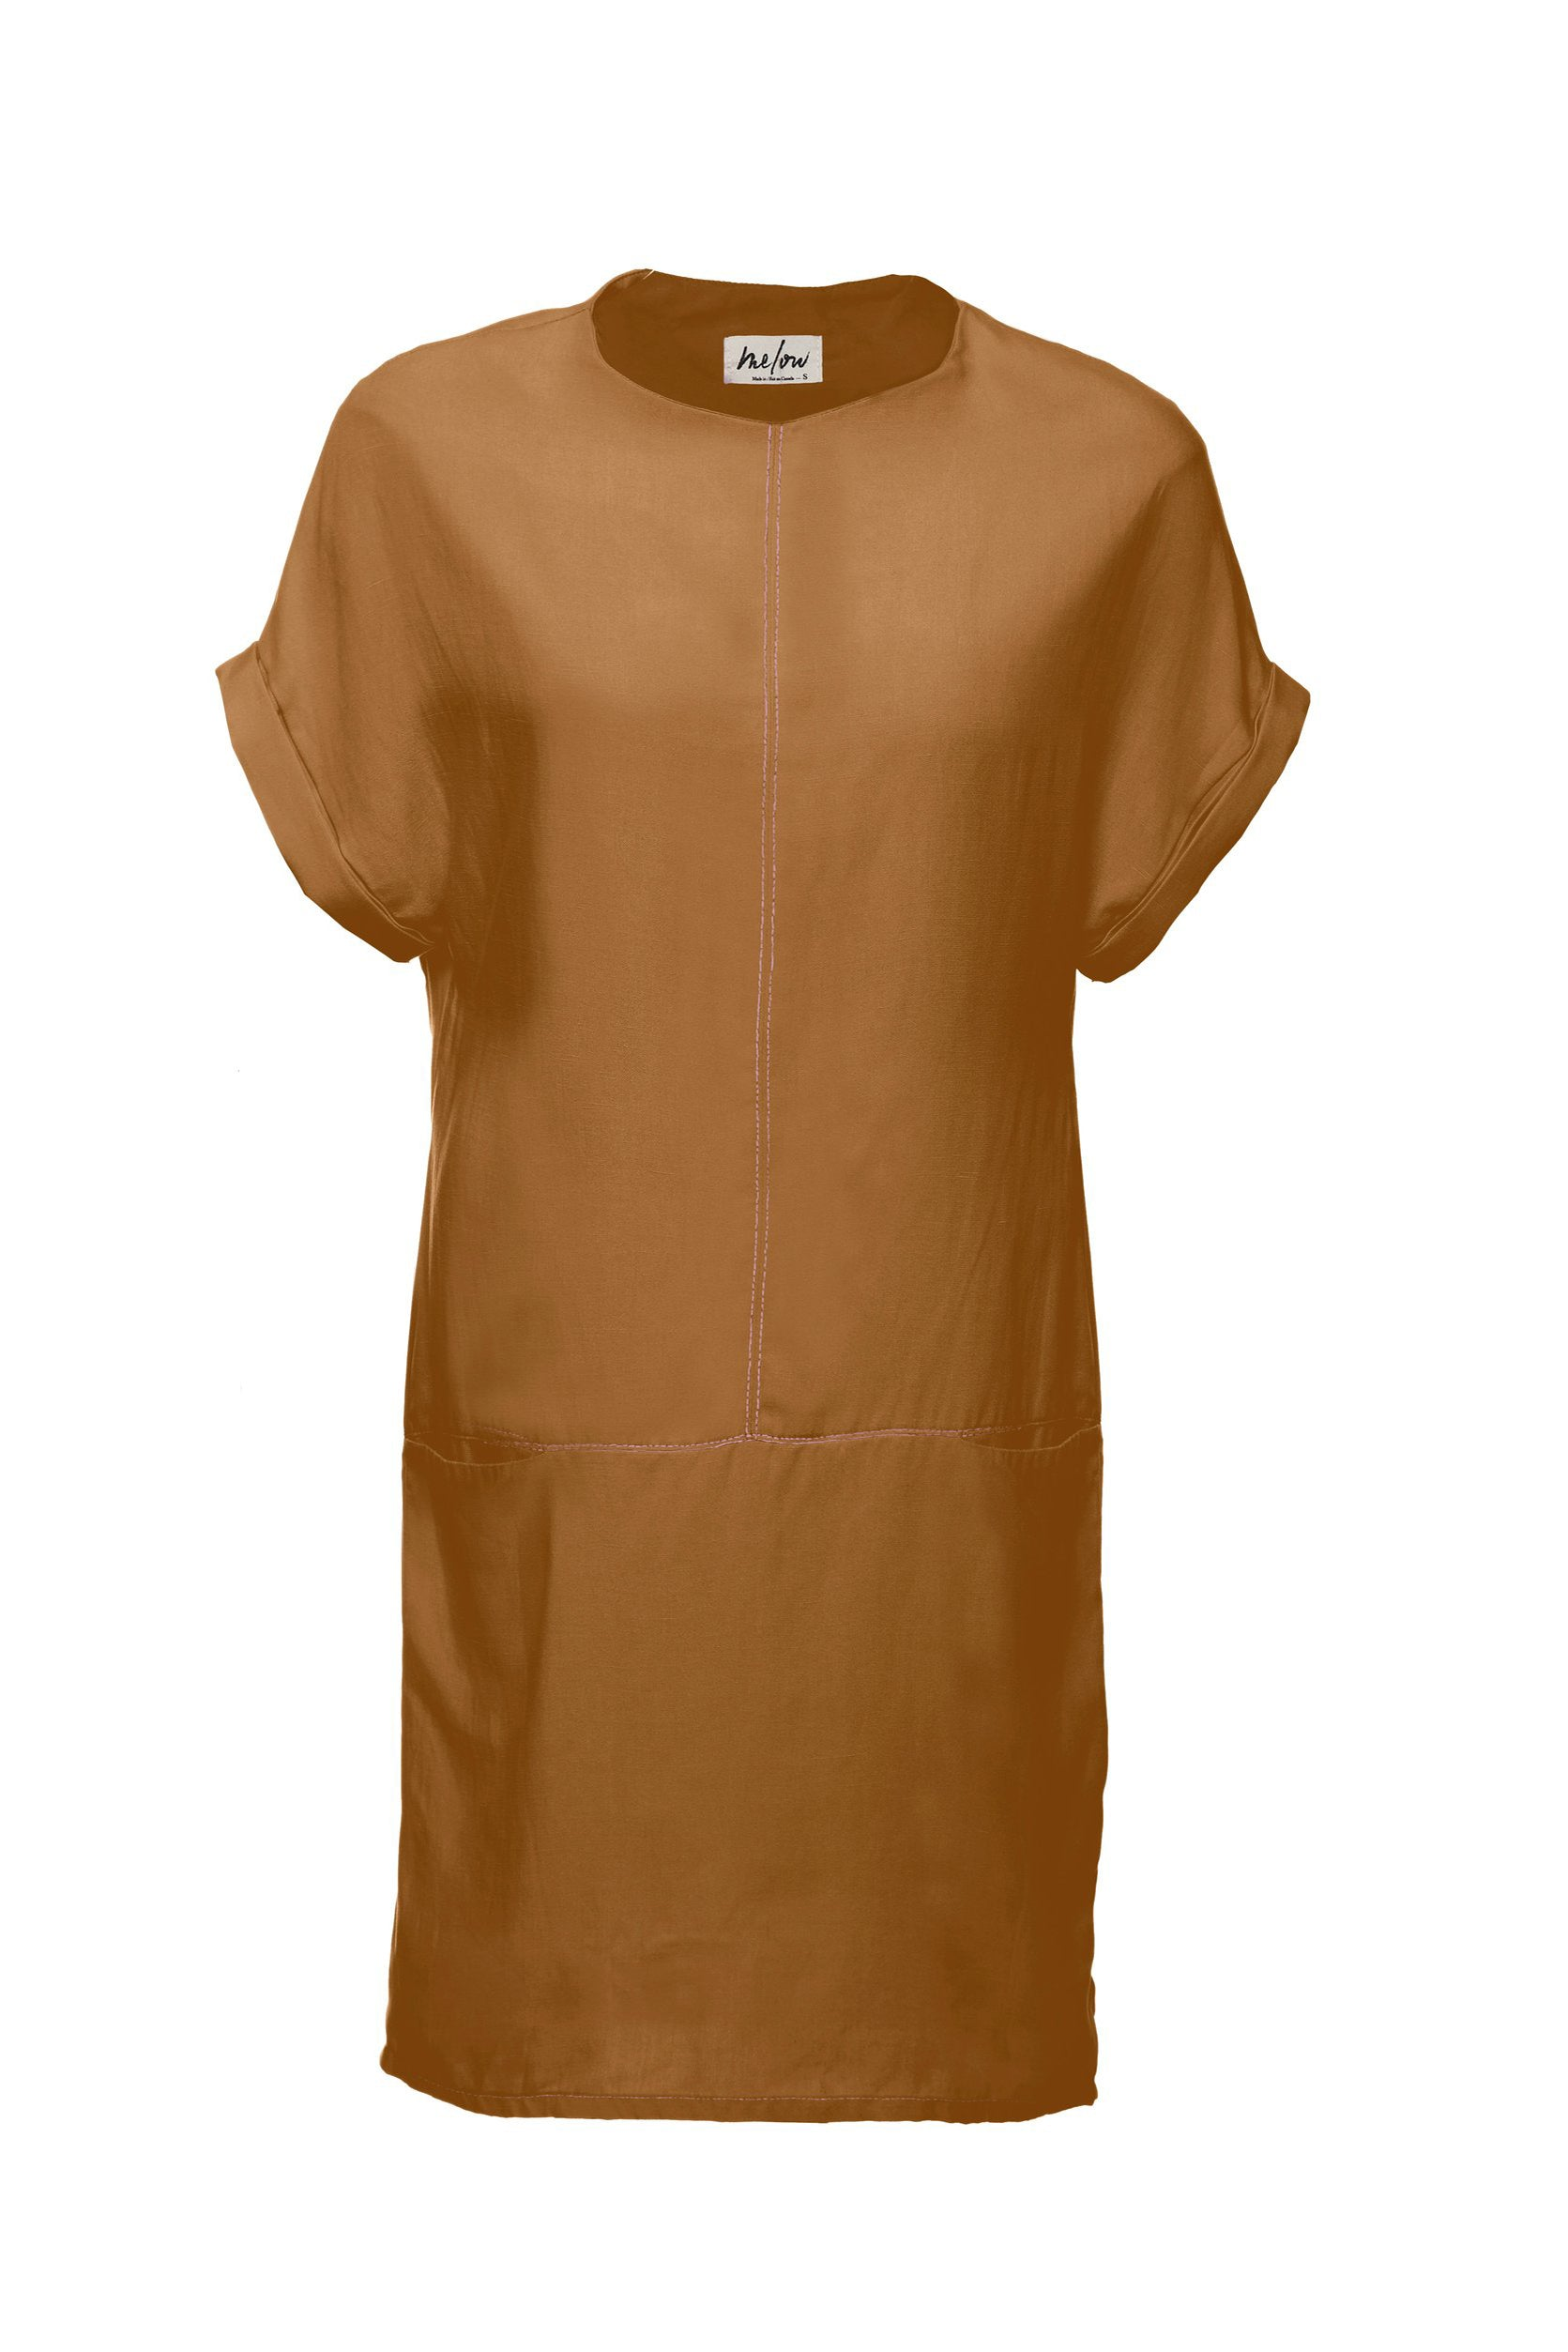 Arwen Dress by Melow par Melissa Bolduc, Copper, straight cut, invisible pockets on horizontal seam, contrast stitching, sizes XS to XXL, made in Montreal